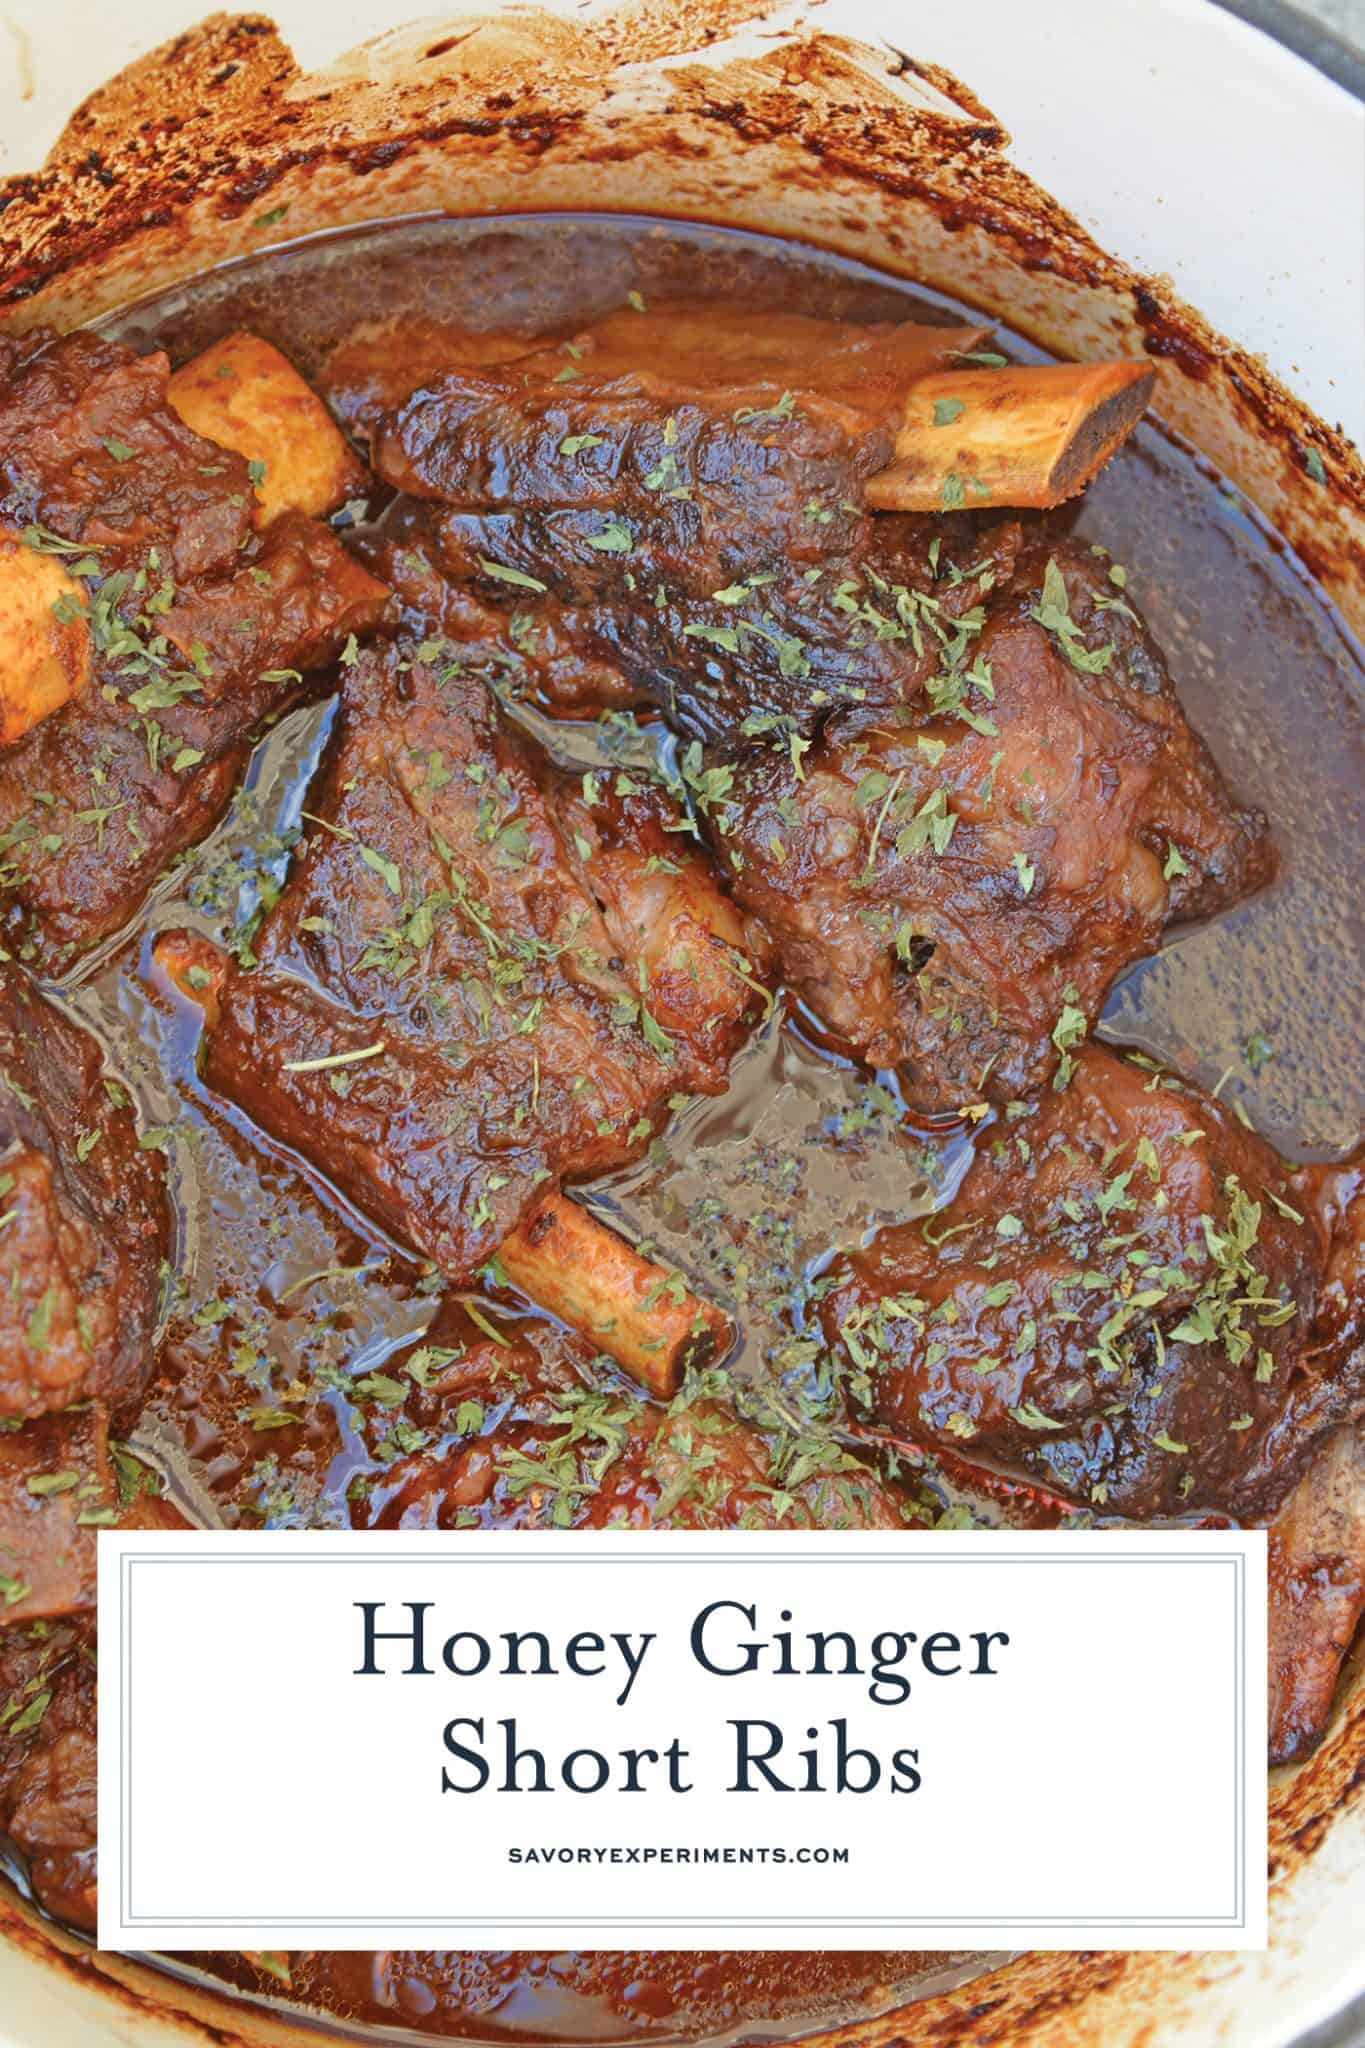 Honey Ginger Short Ribs are a zesty and sweet braised short rib recipe using traditional Asian spices. An easy recipe for fall-off-the-bone ribs. #braisedshortribs #shortribrecipe www.savoryexperiments.com